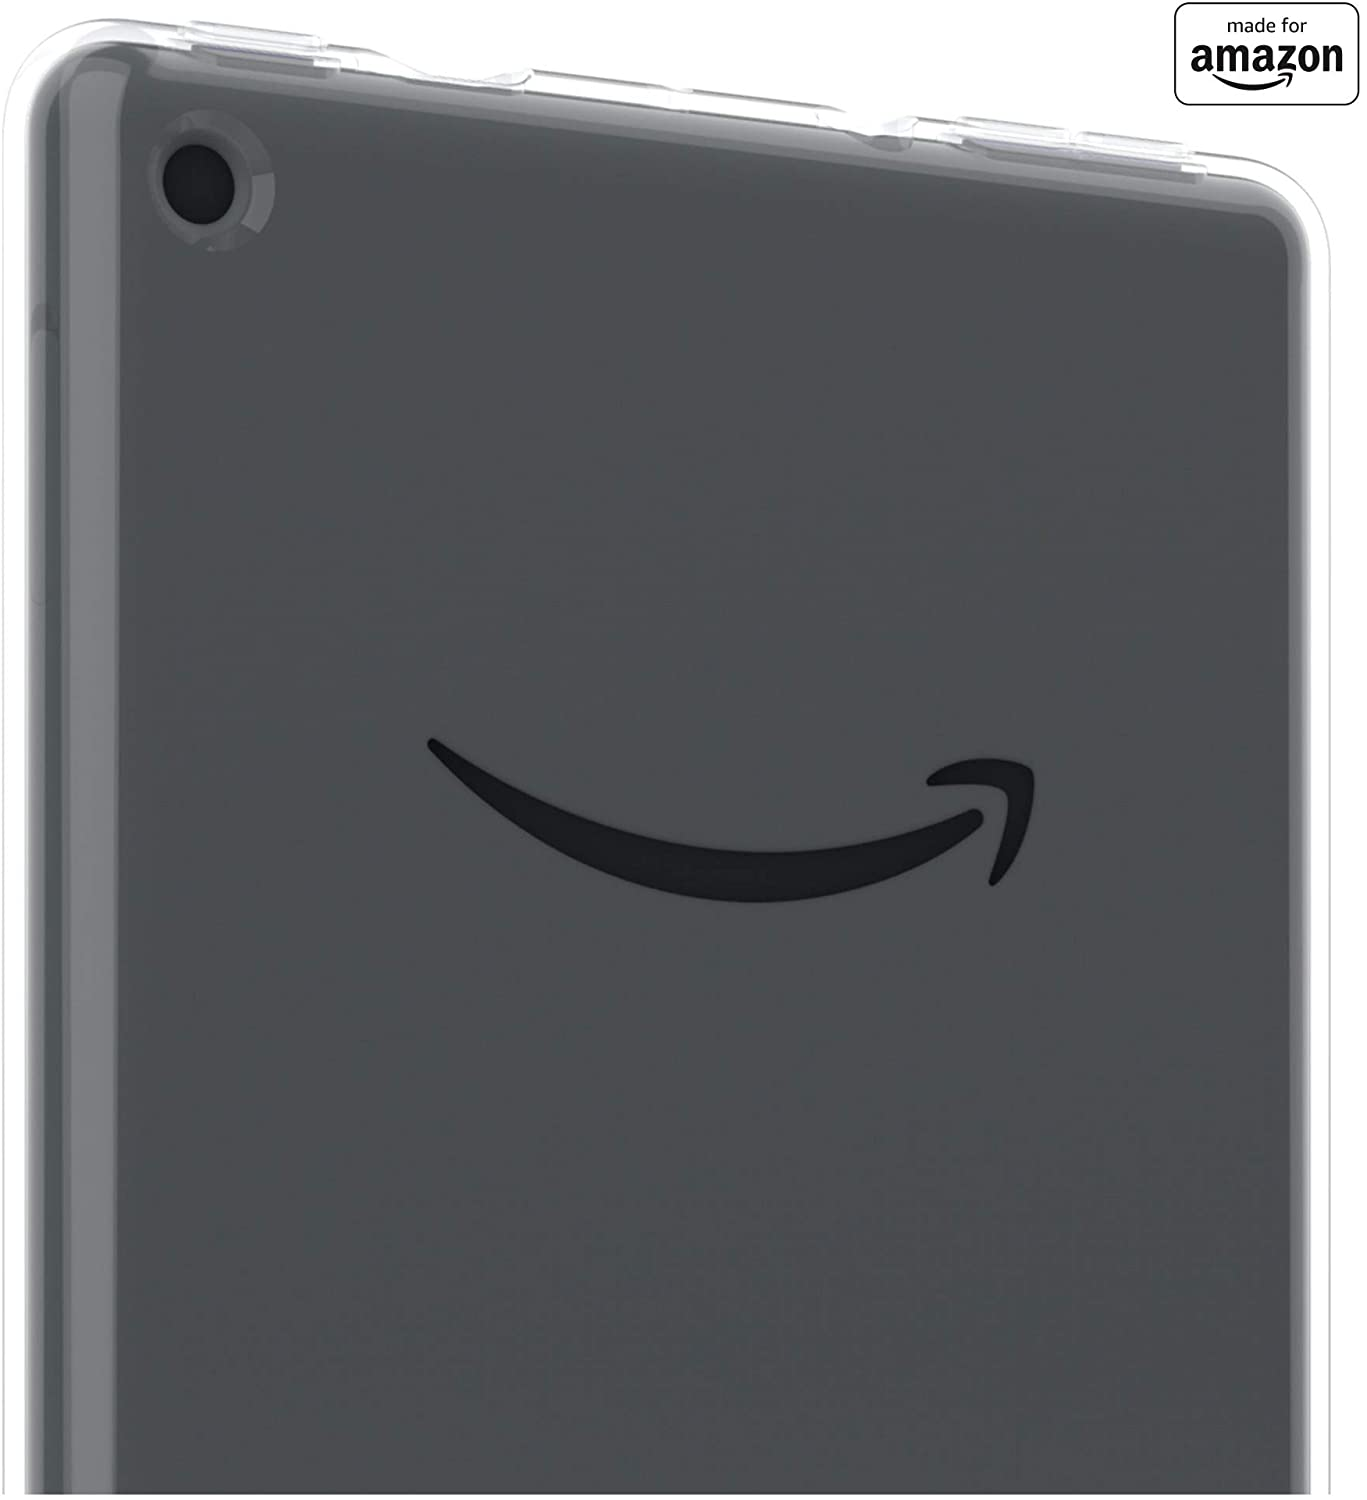 All New, Made For Amazon Clear Case with Screen Protector for Fire 7 Tablet (9th Generation, 2019 Release and 7th Generation, 2017 Release)